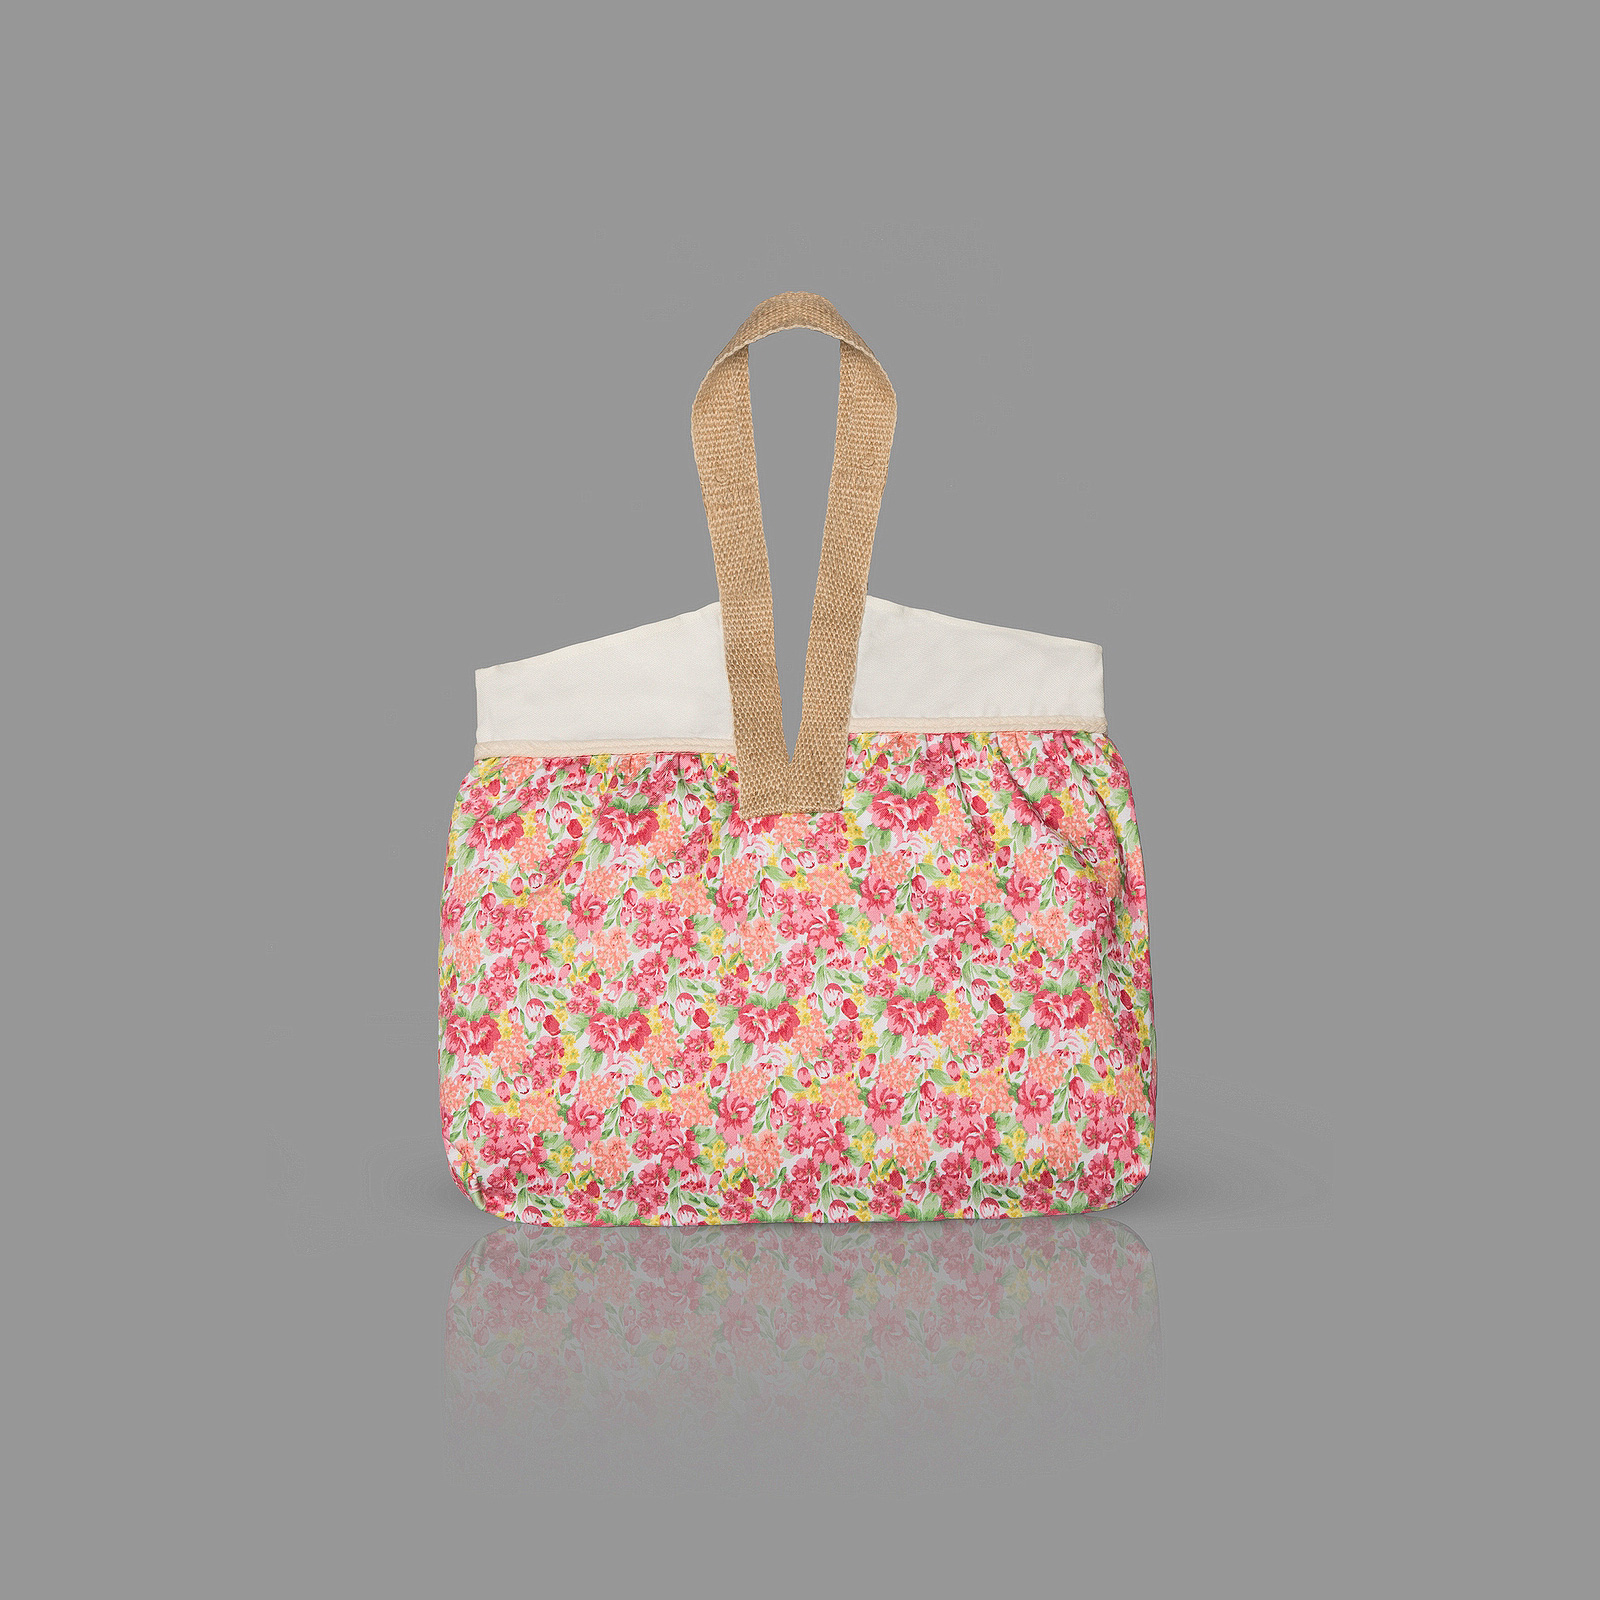 Assorted printed bags